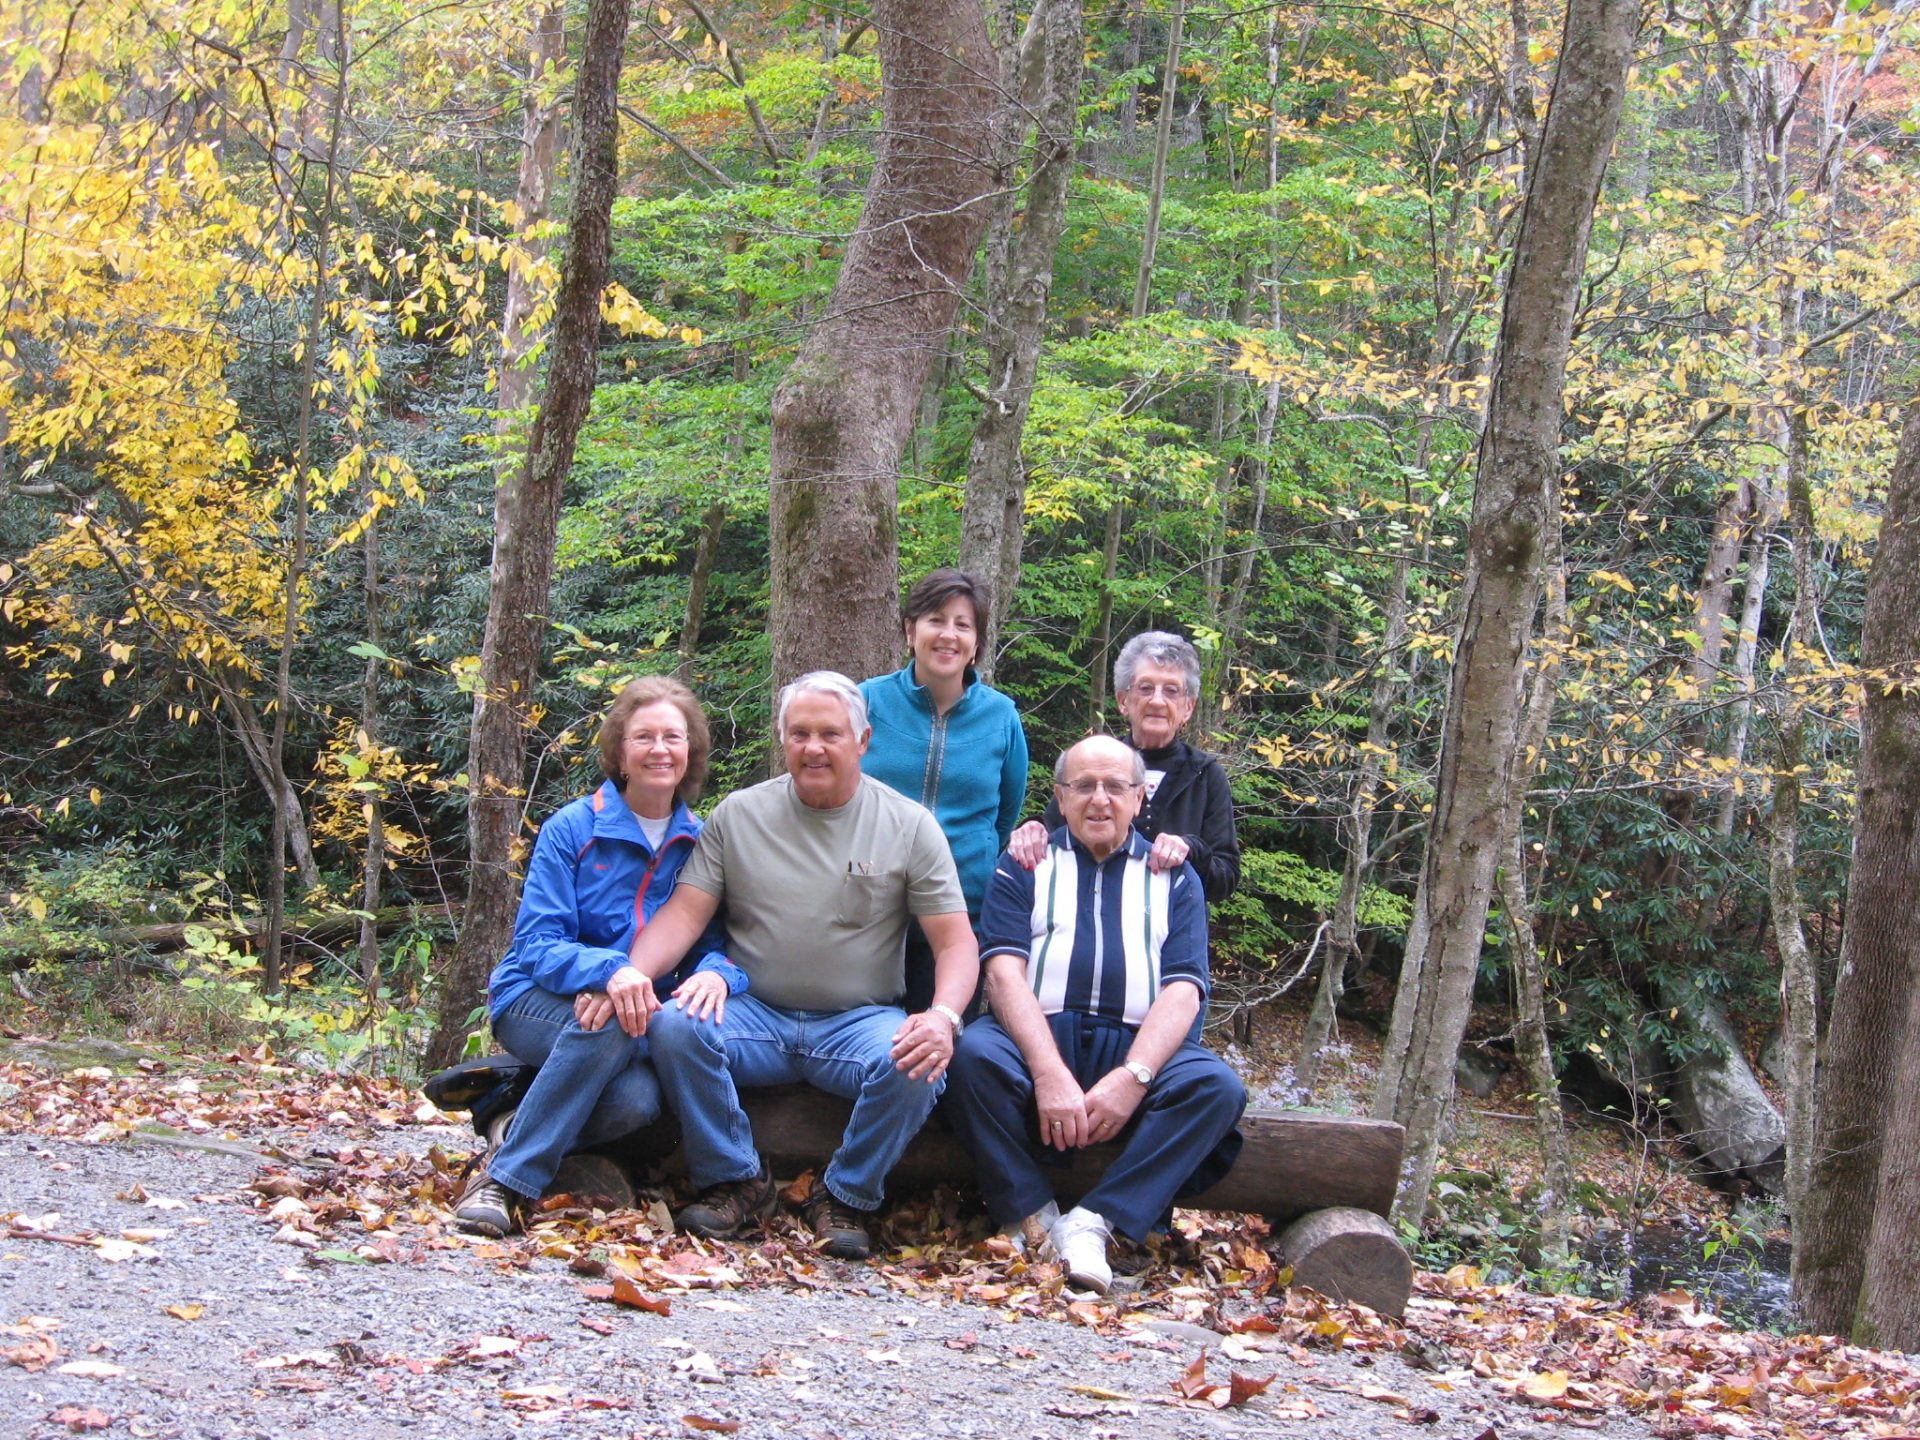 We always enjoyed spending time together in the Smoky Mountains.